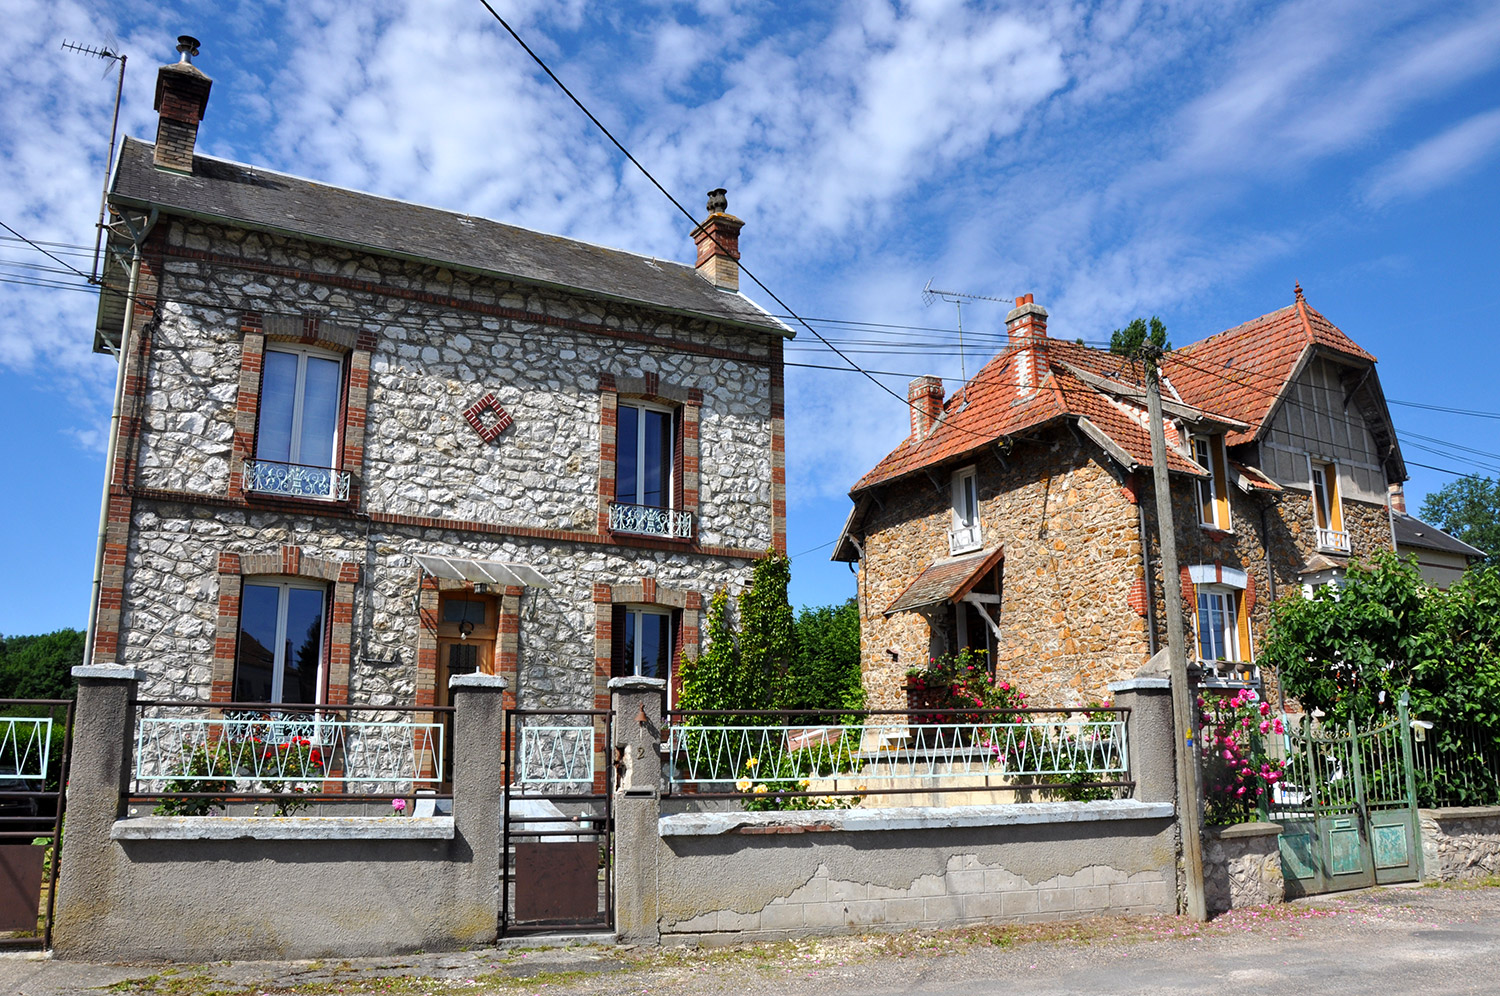 Houses in Veneux-les-Sablons